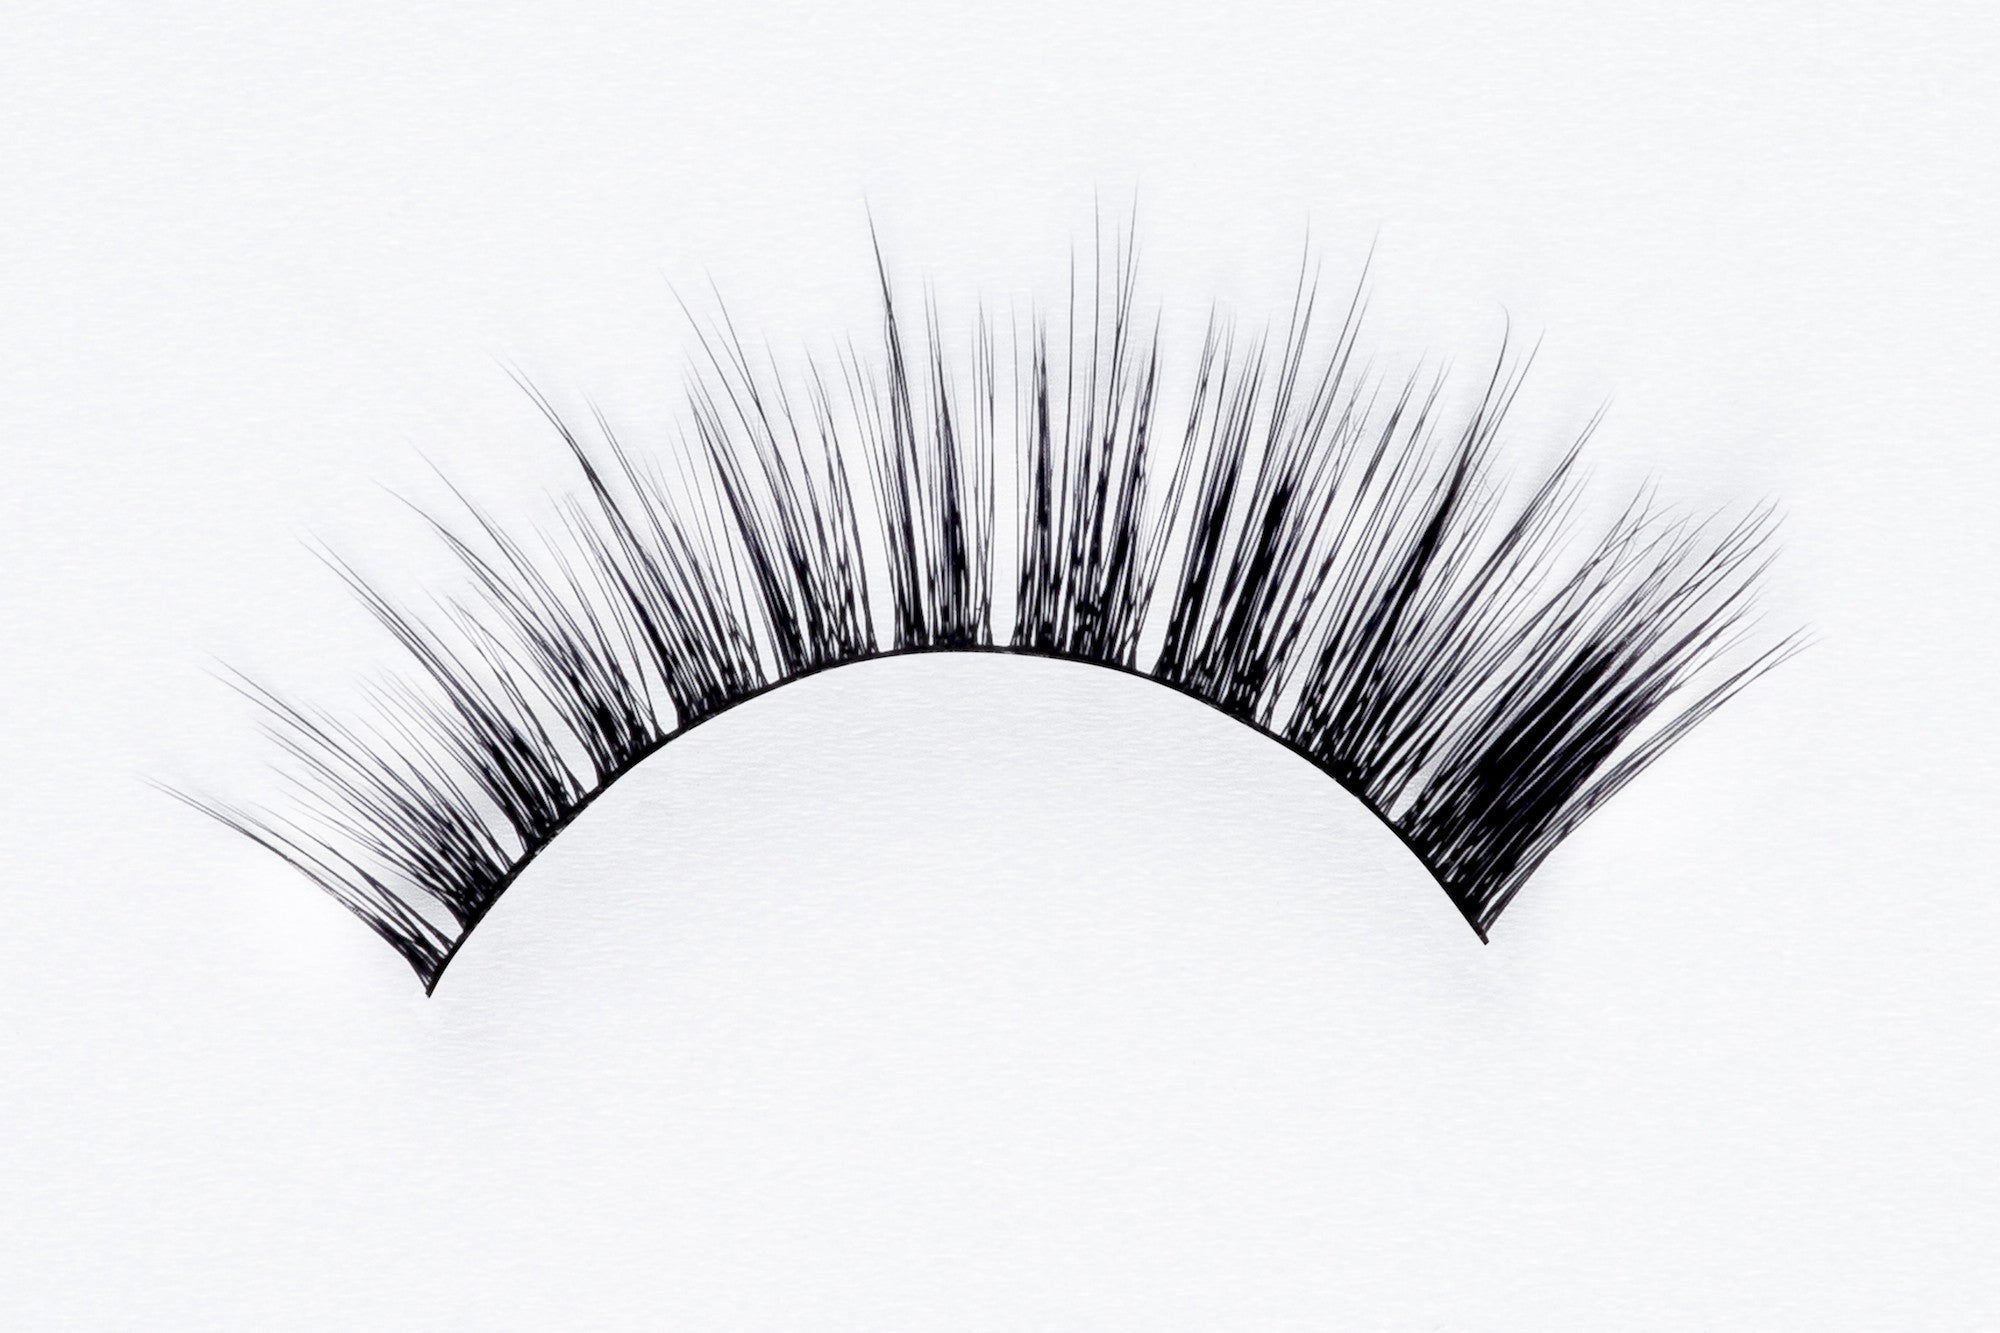 Royalty False Eyelashes (8694476553)